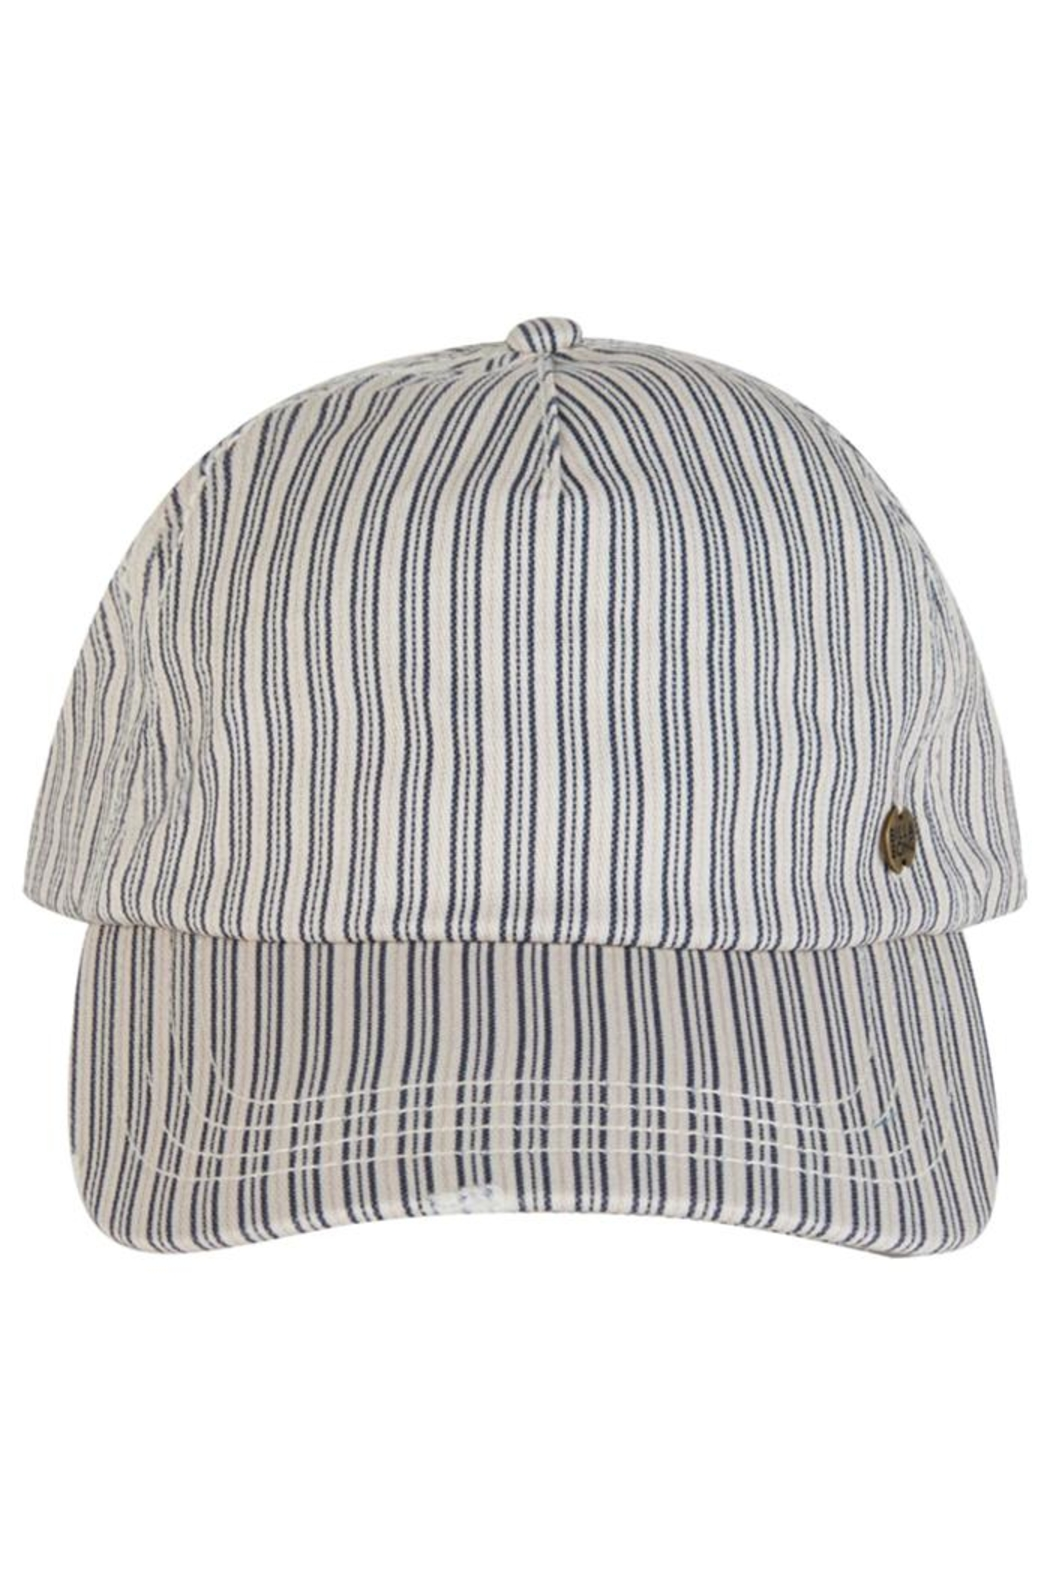 Billabong Striped Distressed Cap - Side Cropped Image